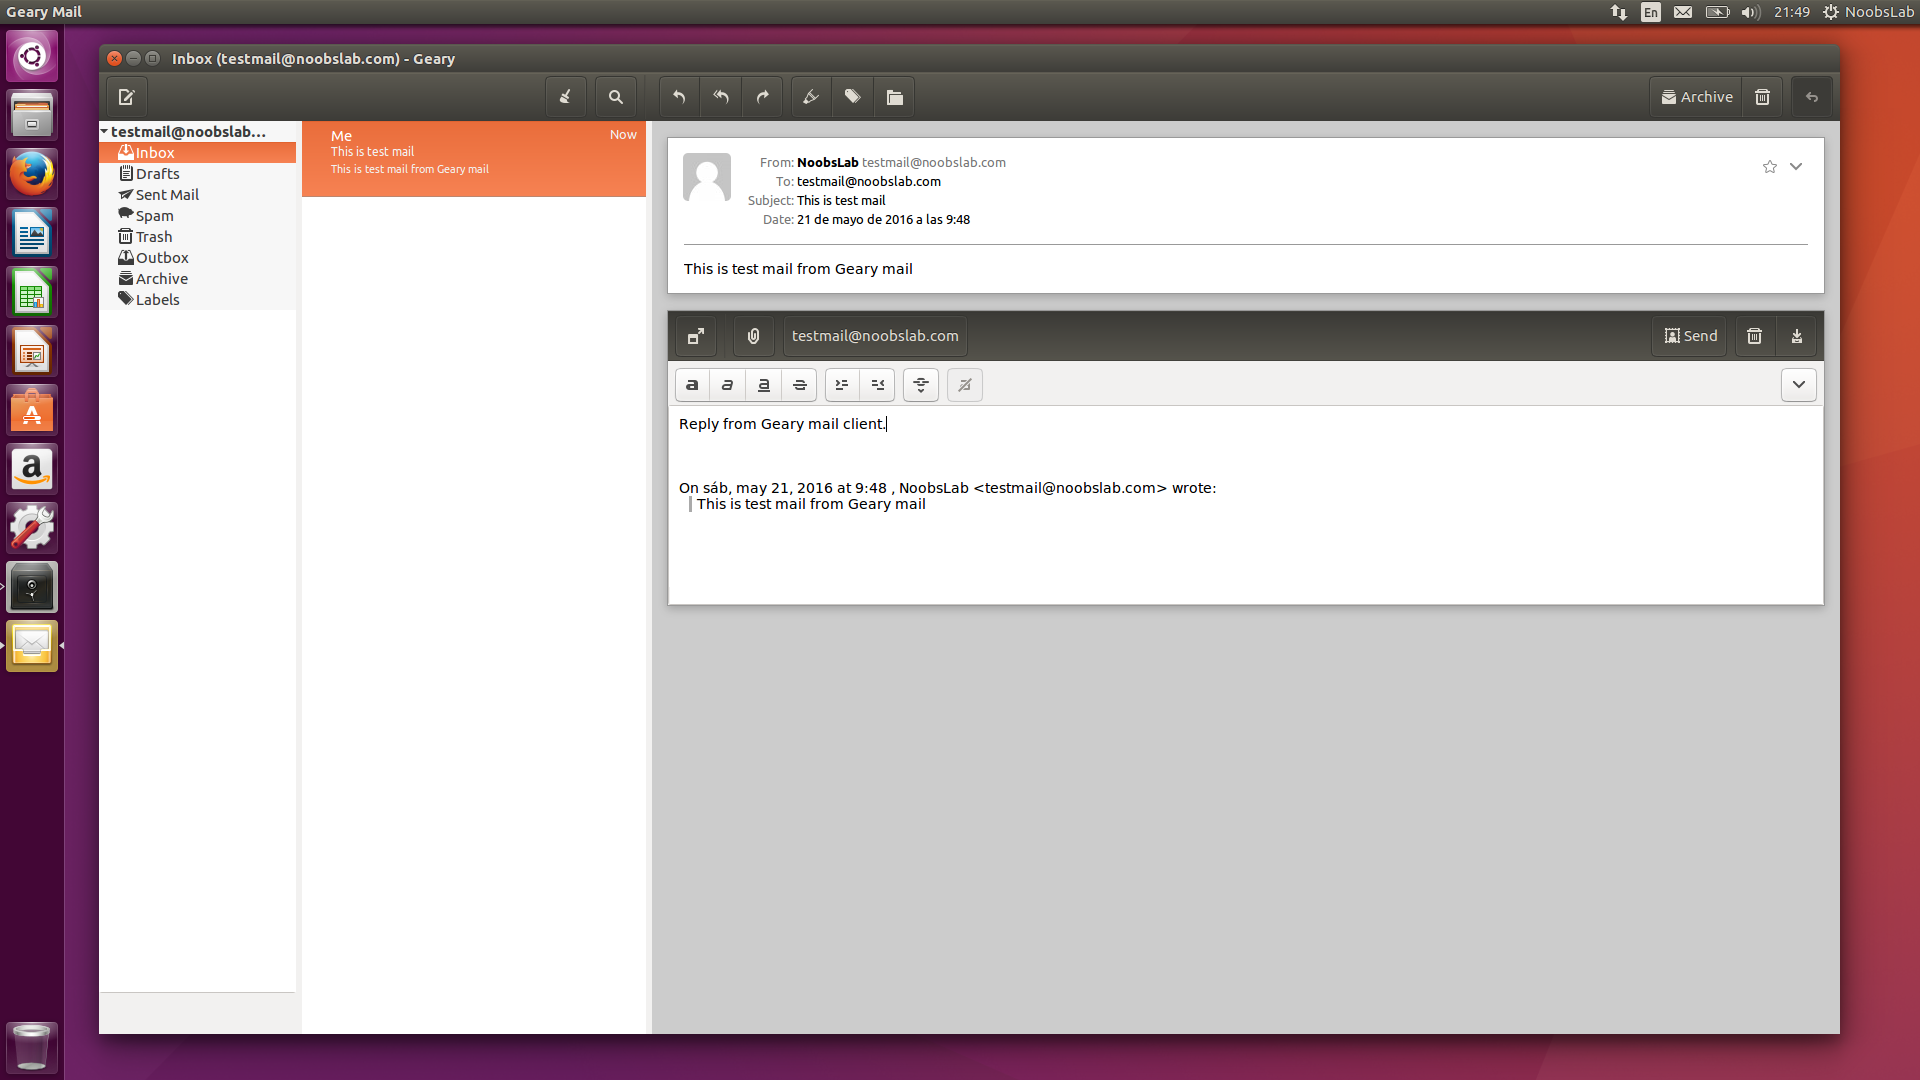 Geary: A Great Email Client for Ubuntu/Linux Mint - NoobsLab